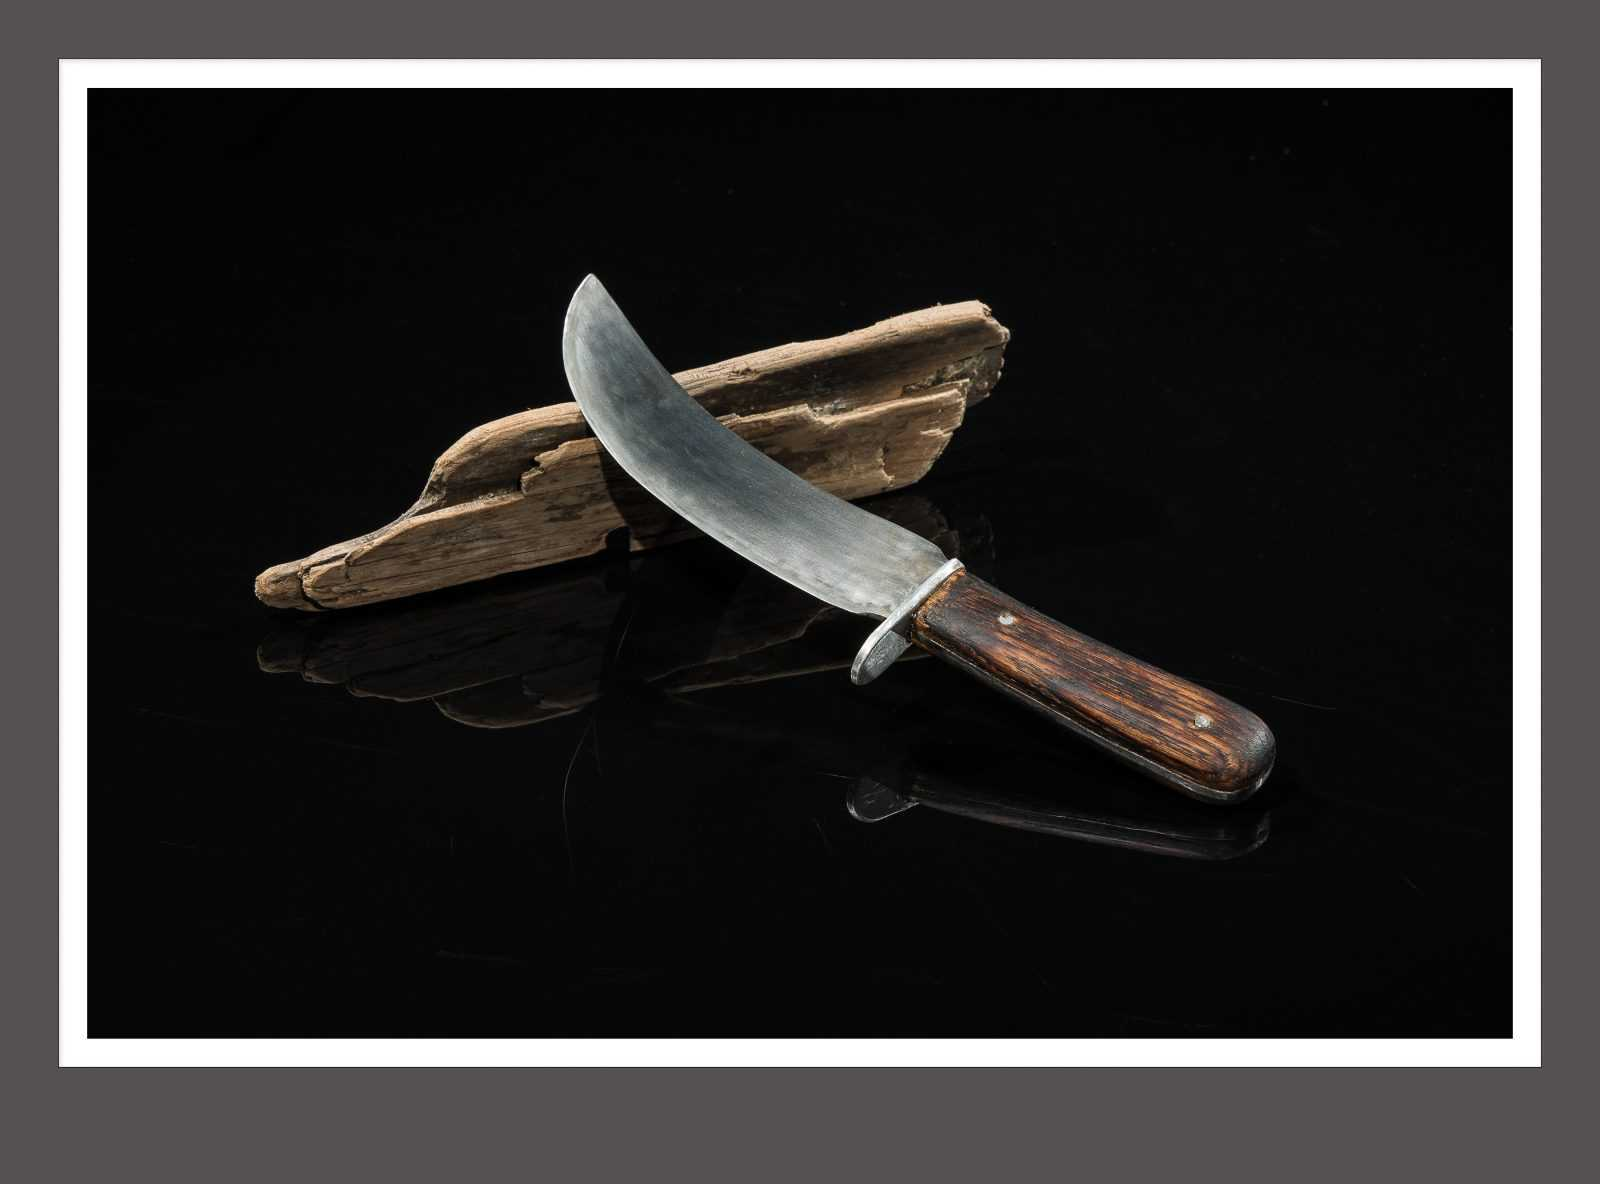 Still life photograph knife on driftwood black background